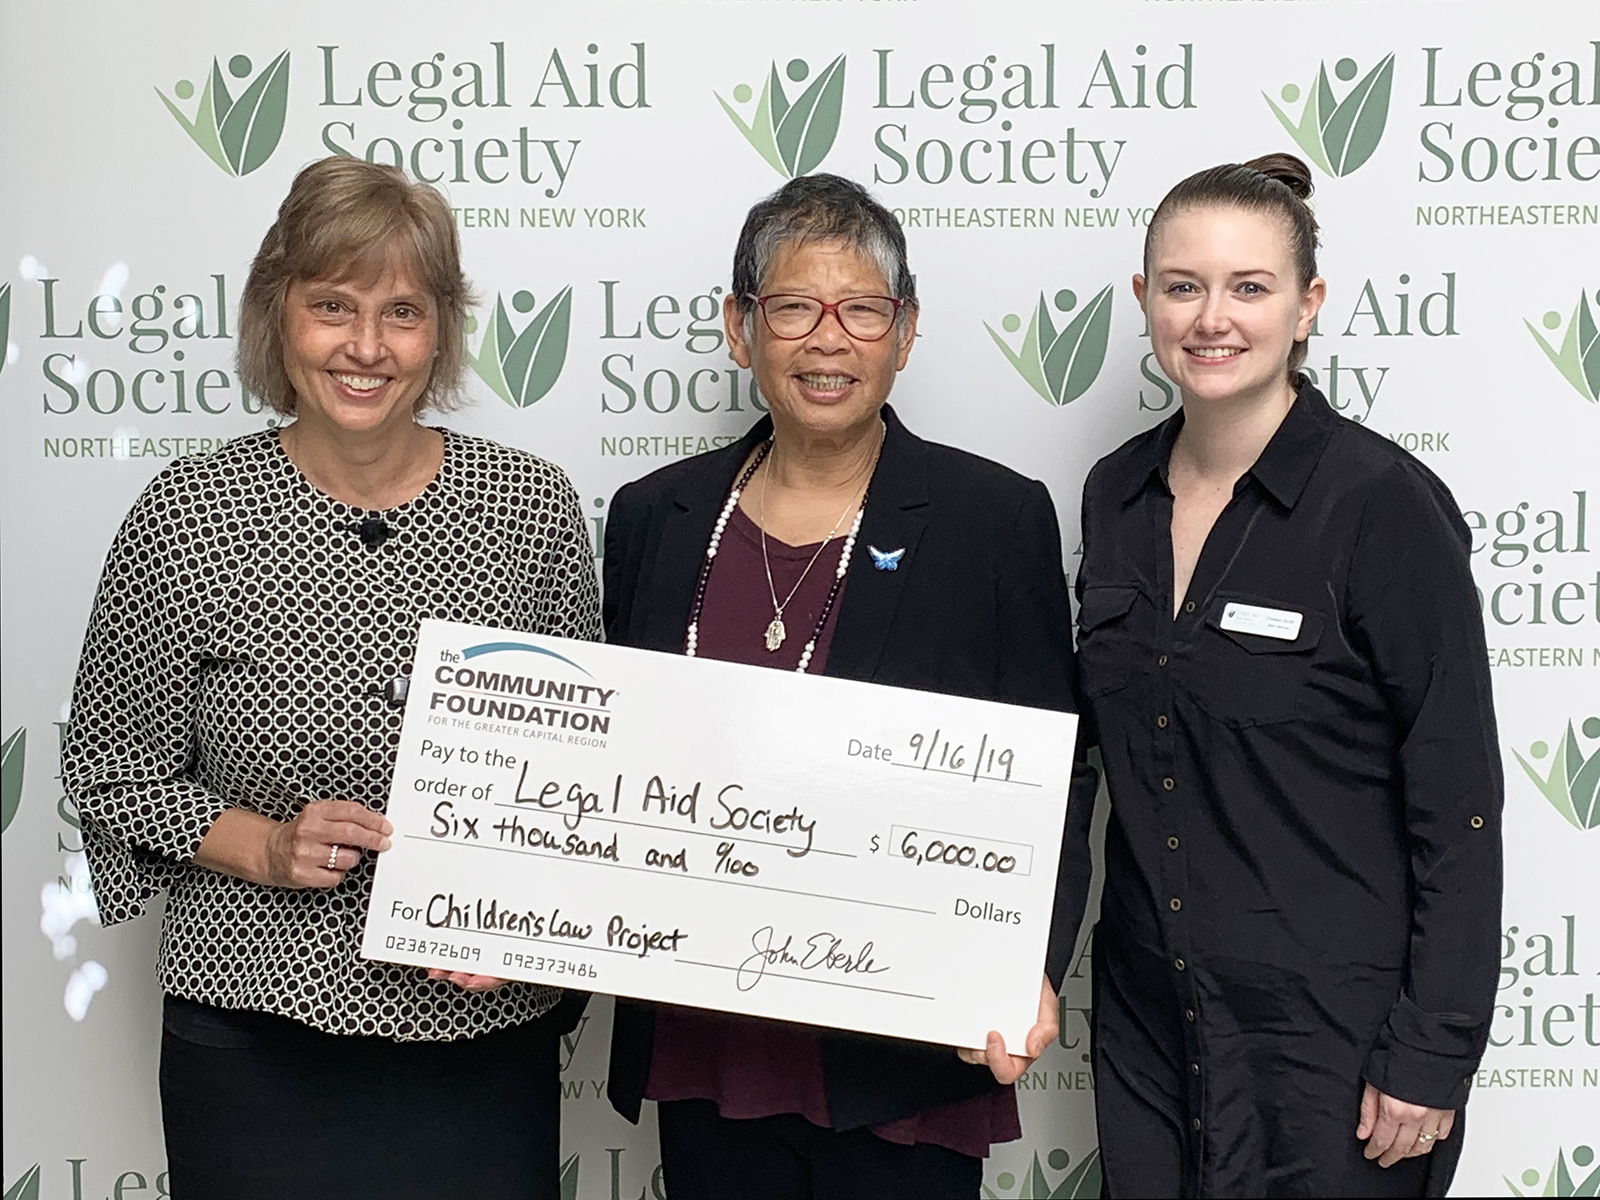 Community Foundation Vice President of Community Grantmaking, Shelly Connolly presents the grant check to LASNNY Executive Director Lillian M. Moy and LASNNY CLP Attorney Christen Smith